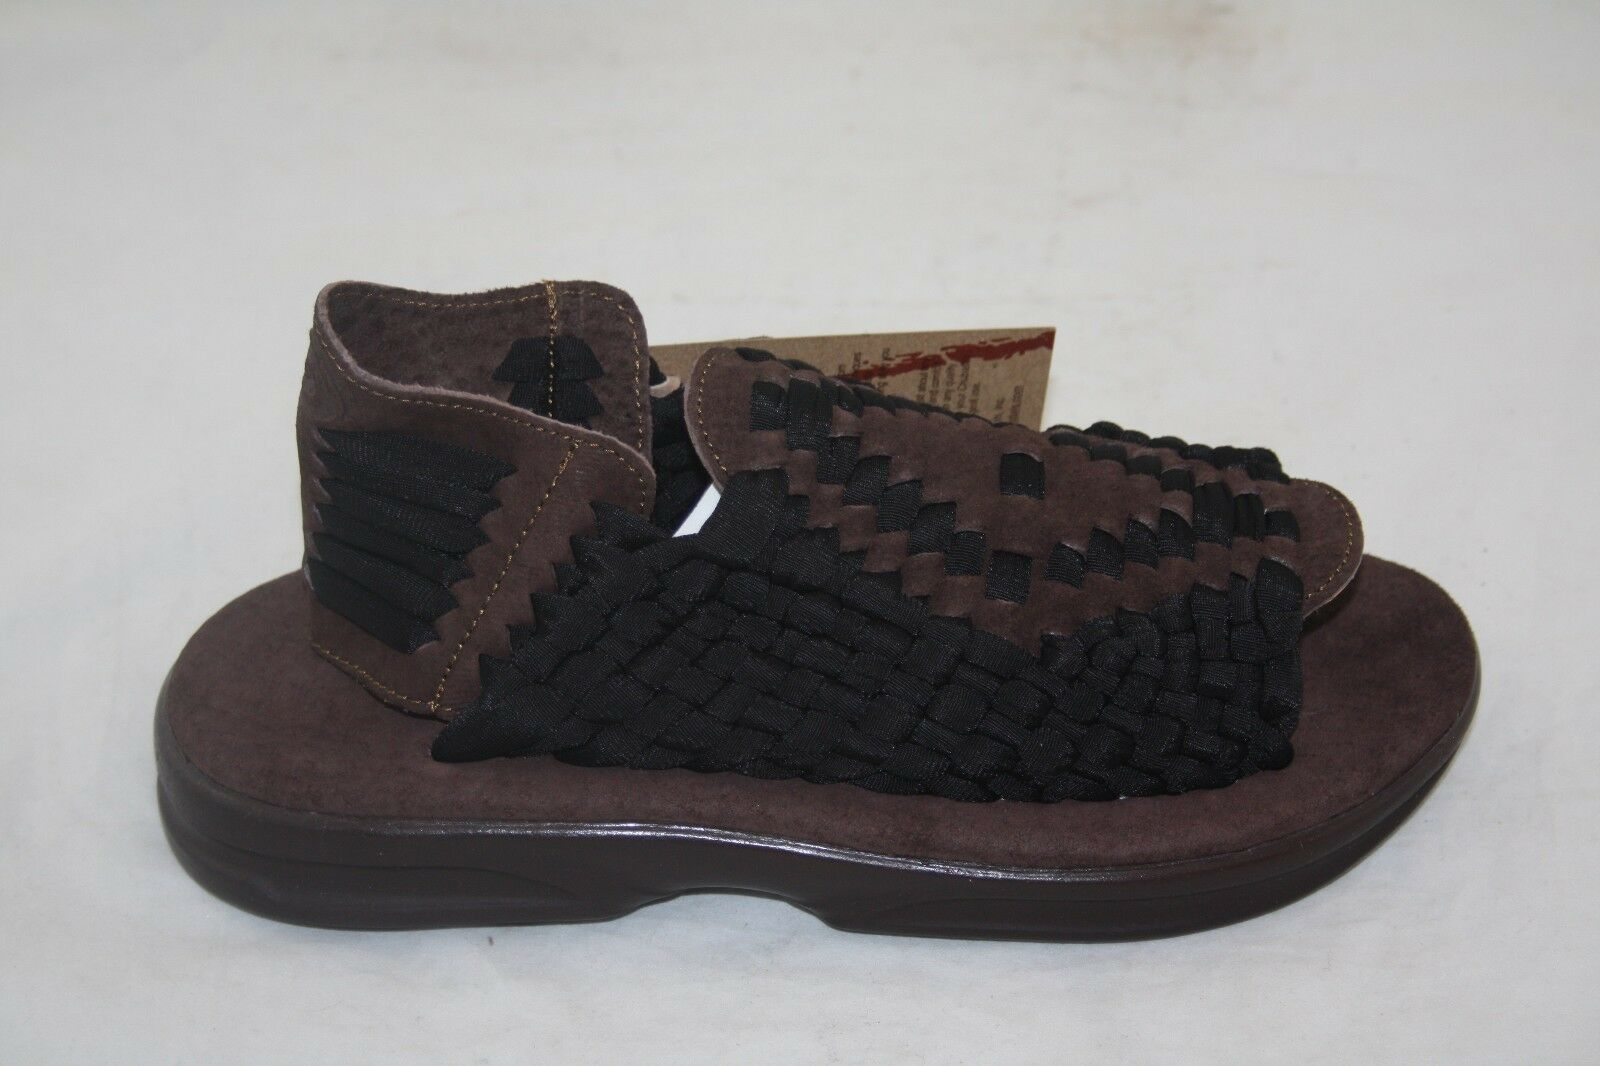 MEN'S CHUBASCO HAND MADE IN MEXICO CH-AZTEC BLACK TABACCO SANDAL MSRP  90.00